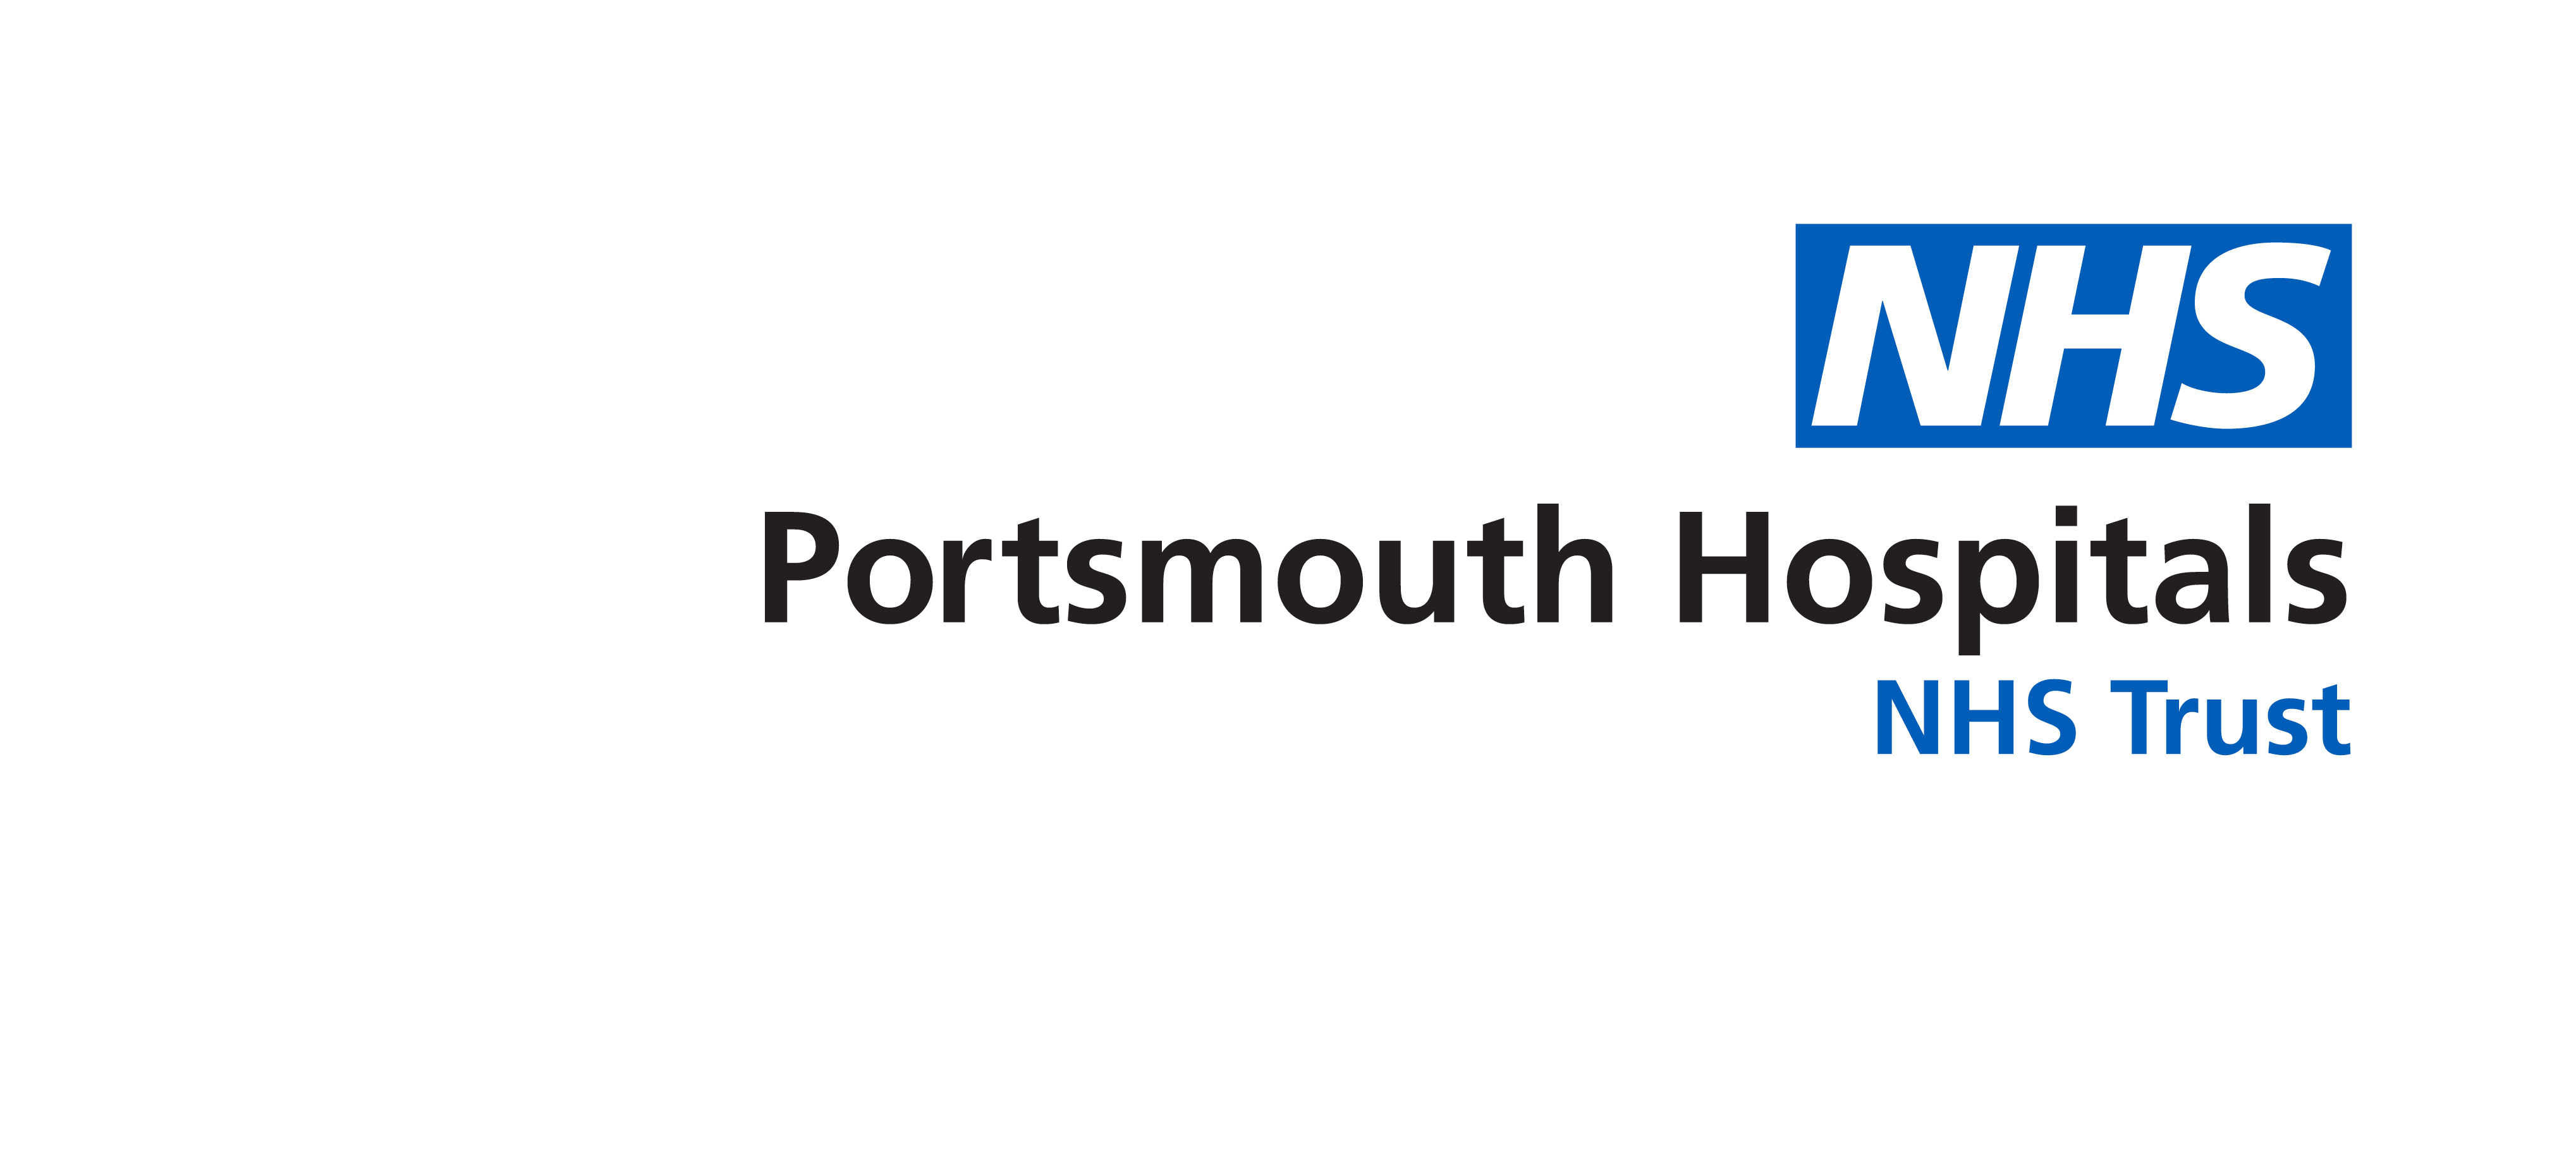 Portsmouth Hospitals NHS Trust response to CQC report